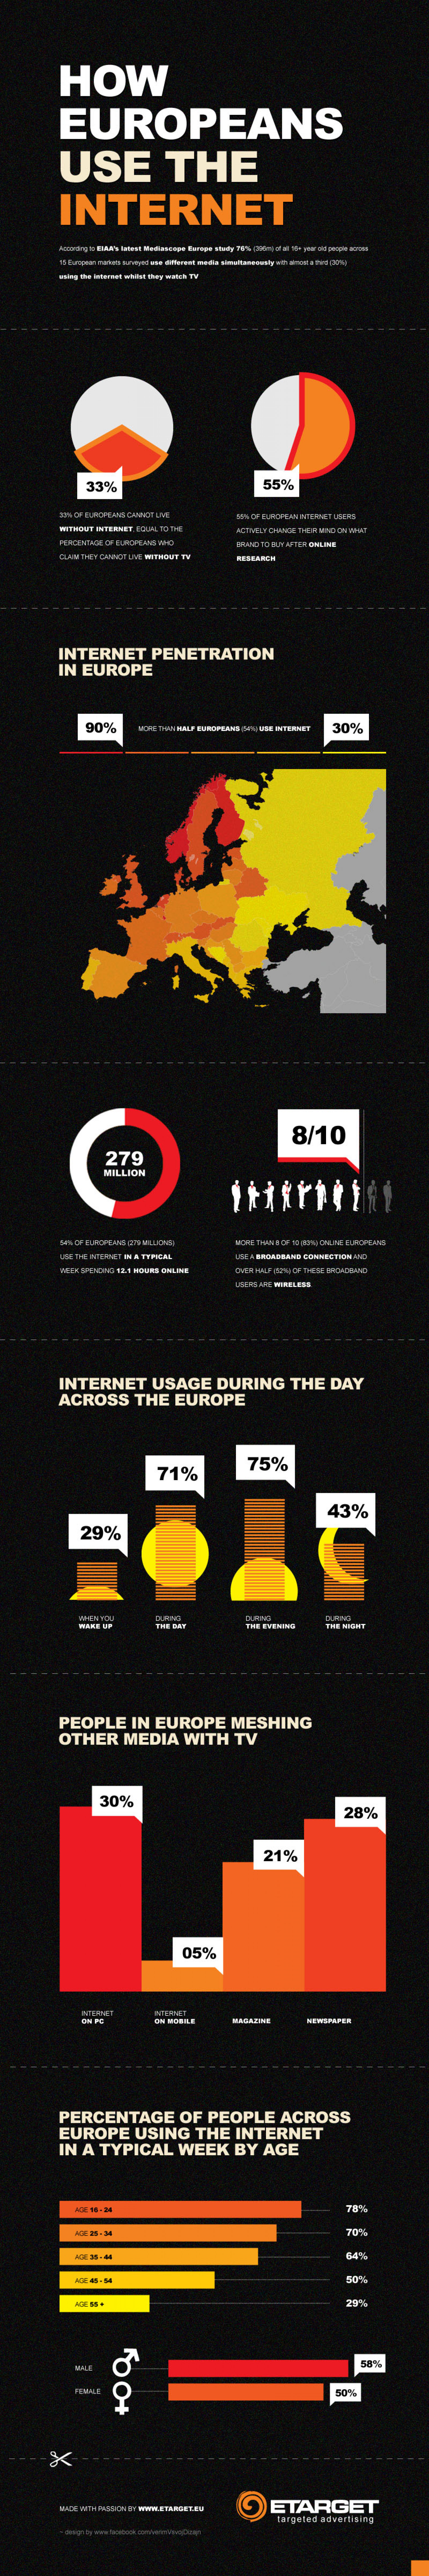 HOW  EUROPEANS  USE THE INTERNET  Infographic